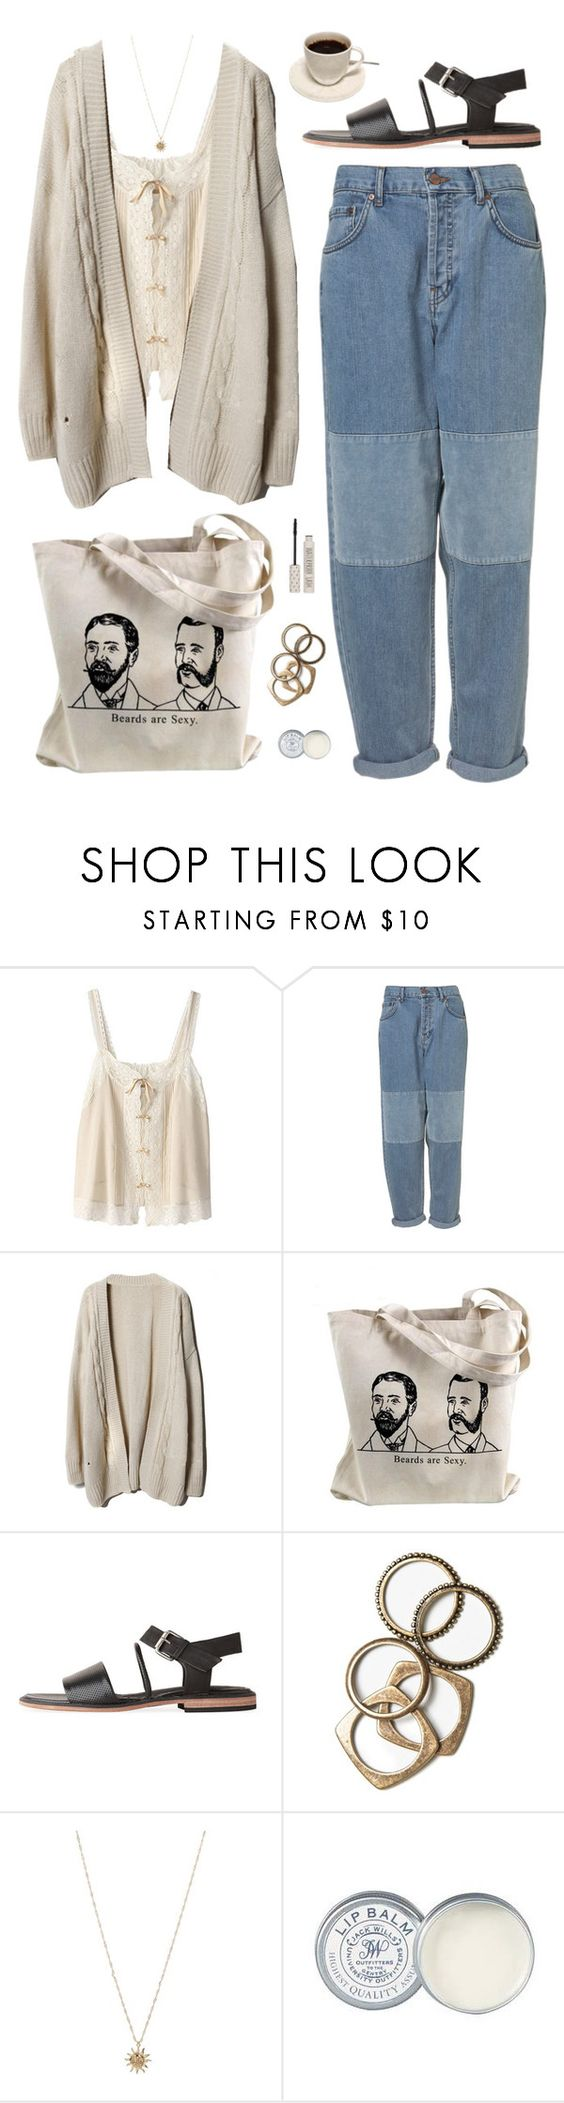 """berlin"" by hannahgraceroberts ❤ liked on Polyvore featuring Bilitis dix-sept ans, Rachel Comey, Rachel Leigh, ASOS, Jack Wills and Topshop"